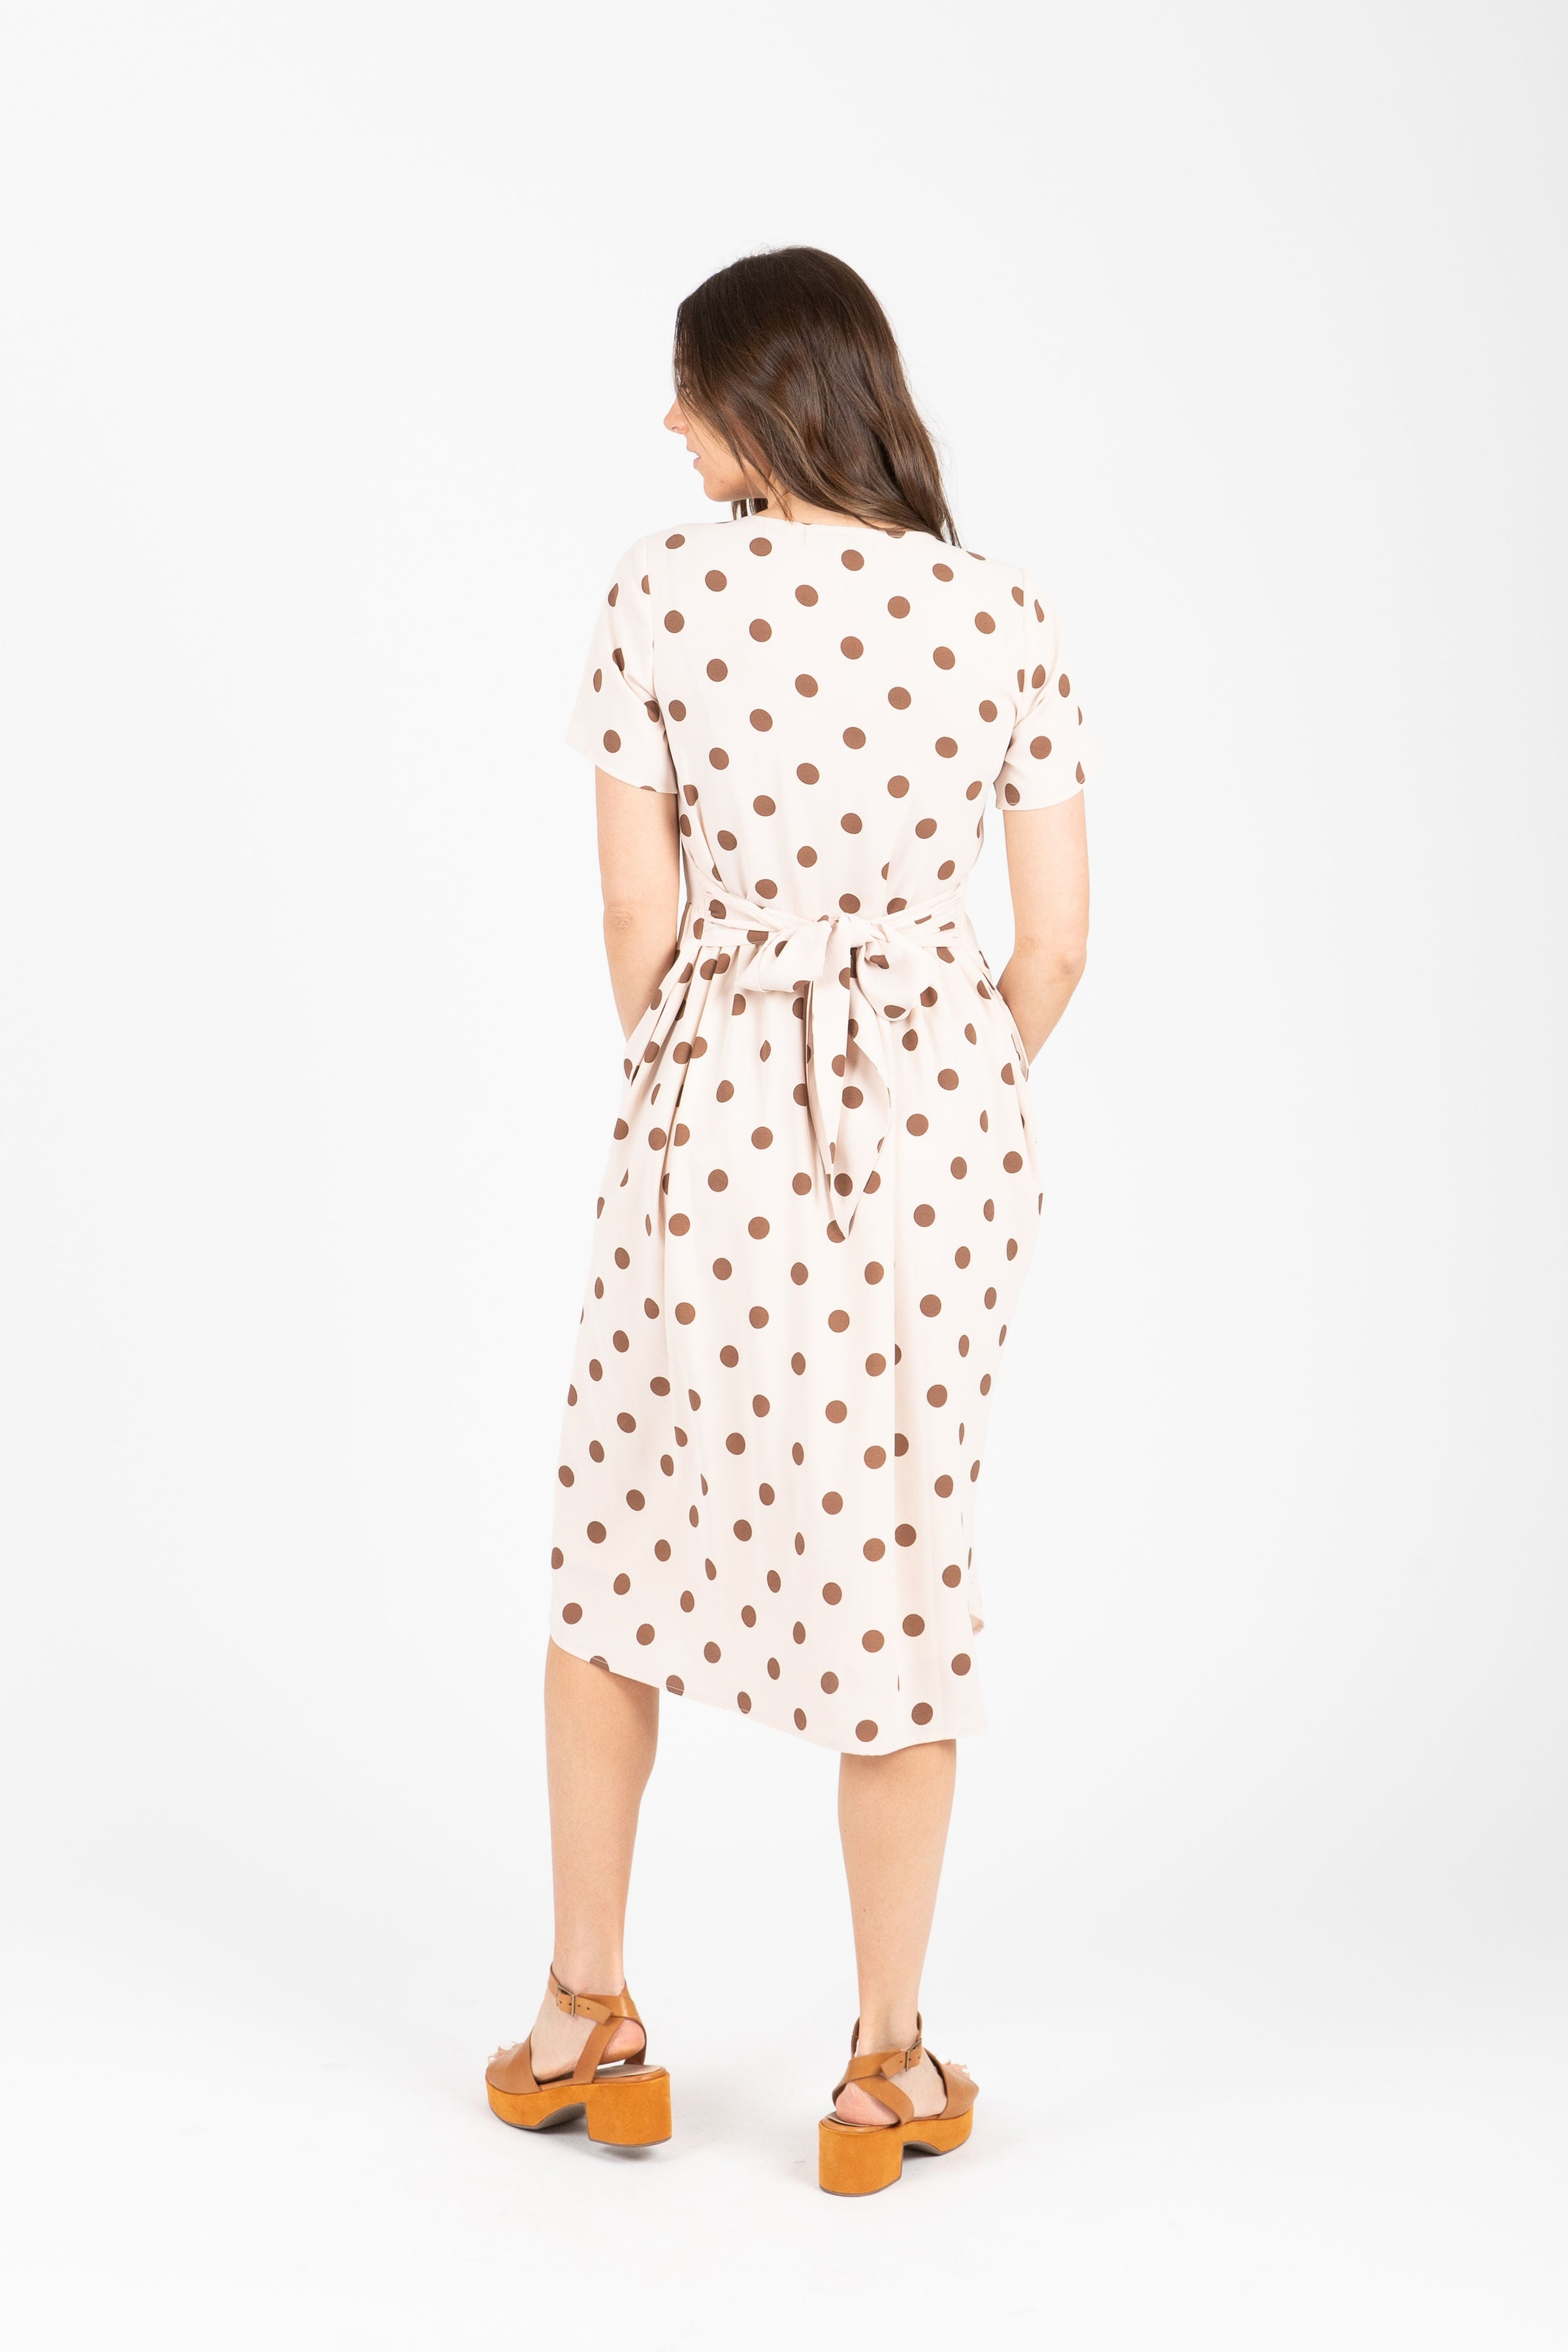 The Goldie Patterned Midi Dress in Cream